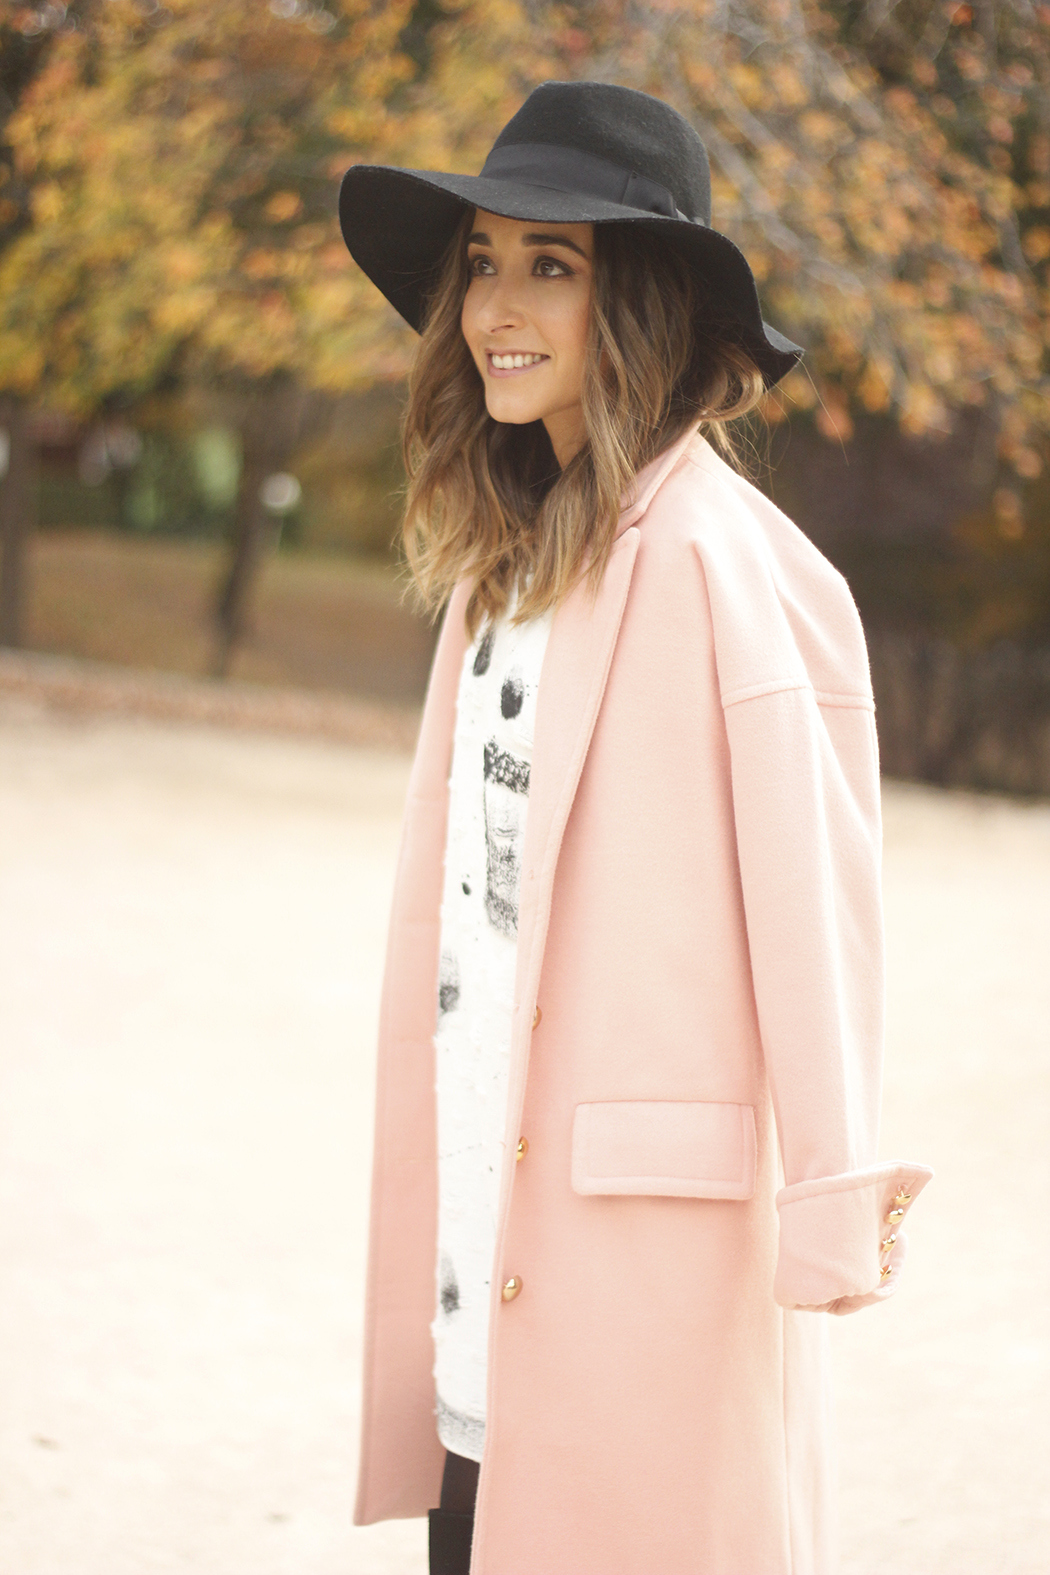 Black and White Dress Pink Coat Black Hat outfit style over the knees boots14